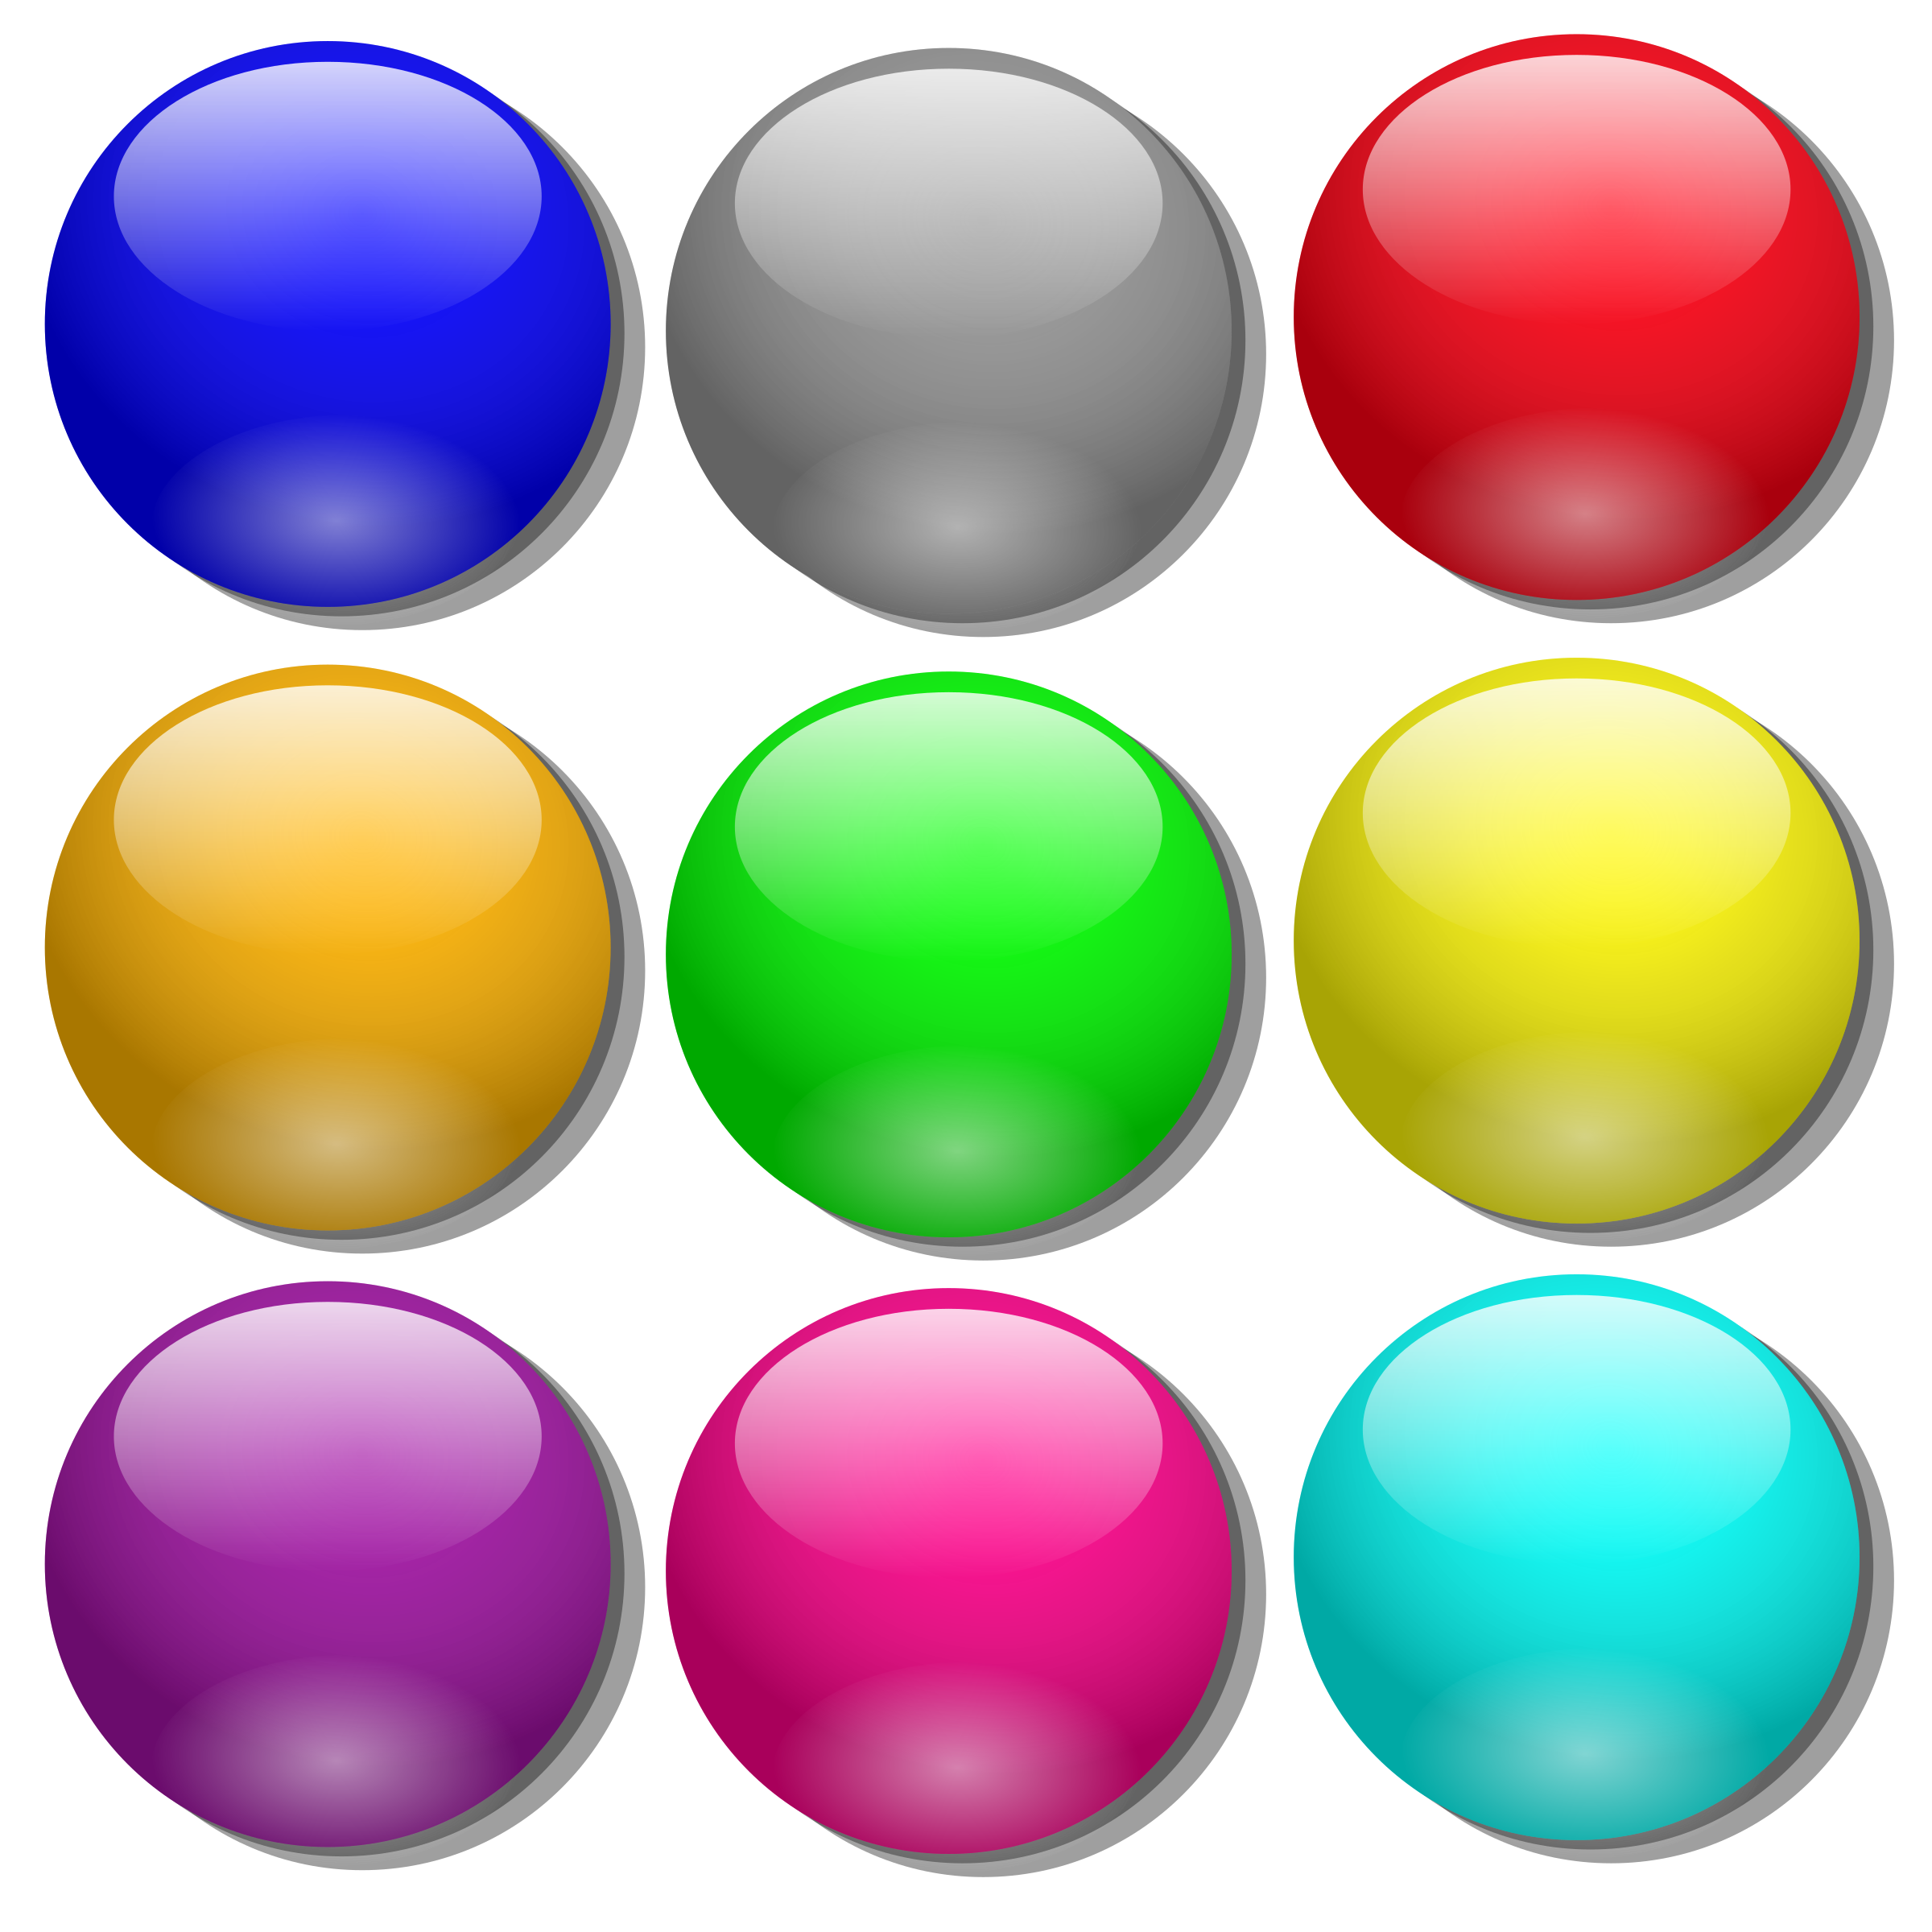 Marbles clipart clip art. Game simple dots big